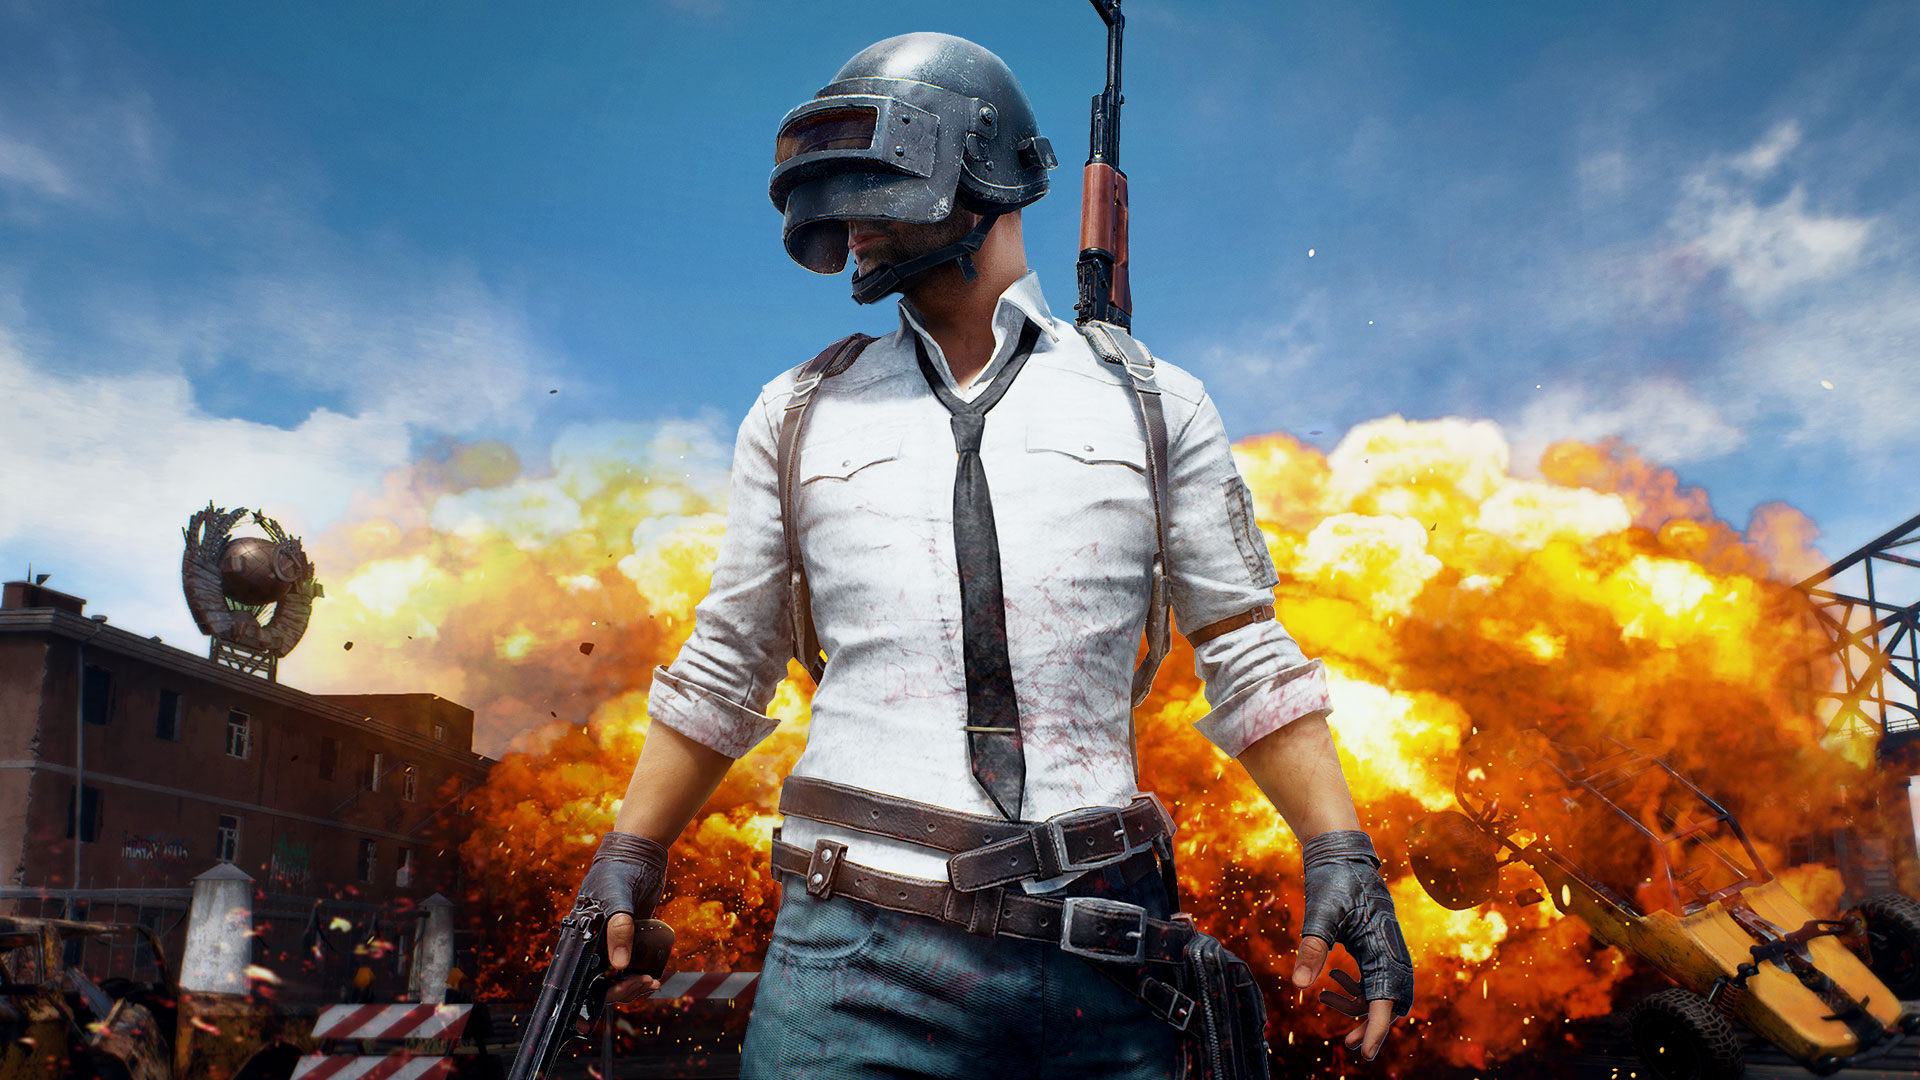 Inaugural Season for PlayerUnknown's Battlegrounds to Finish With $2M Global Championship